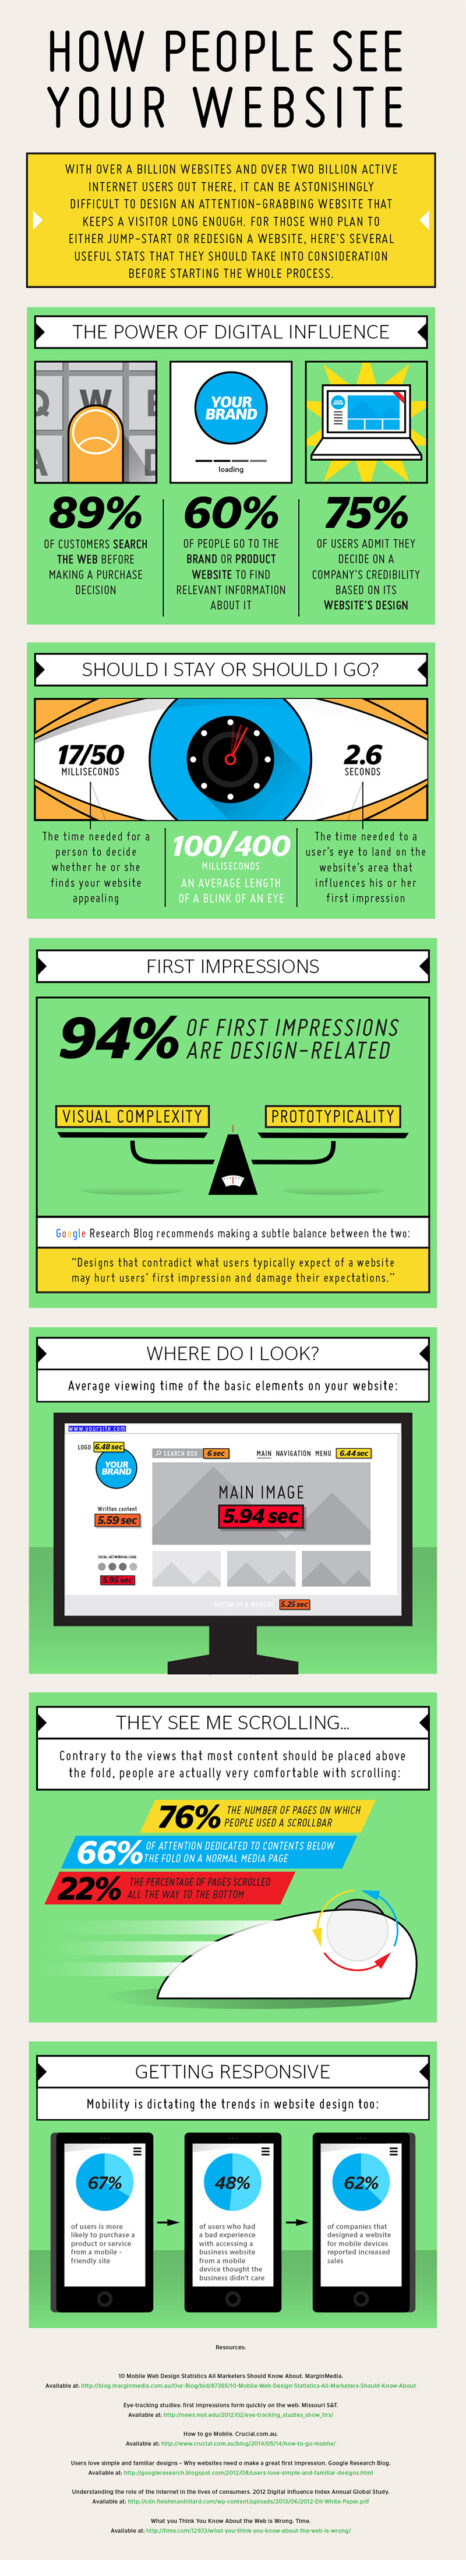 How People Judge Your Website Design Decide Whether to Contact You scaled